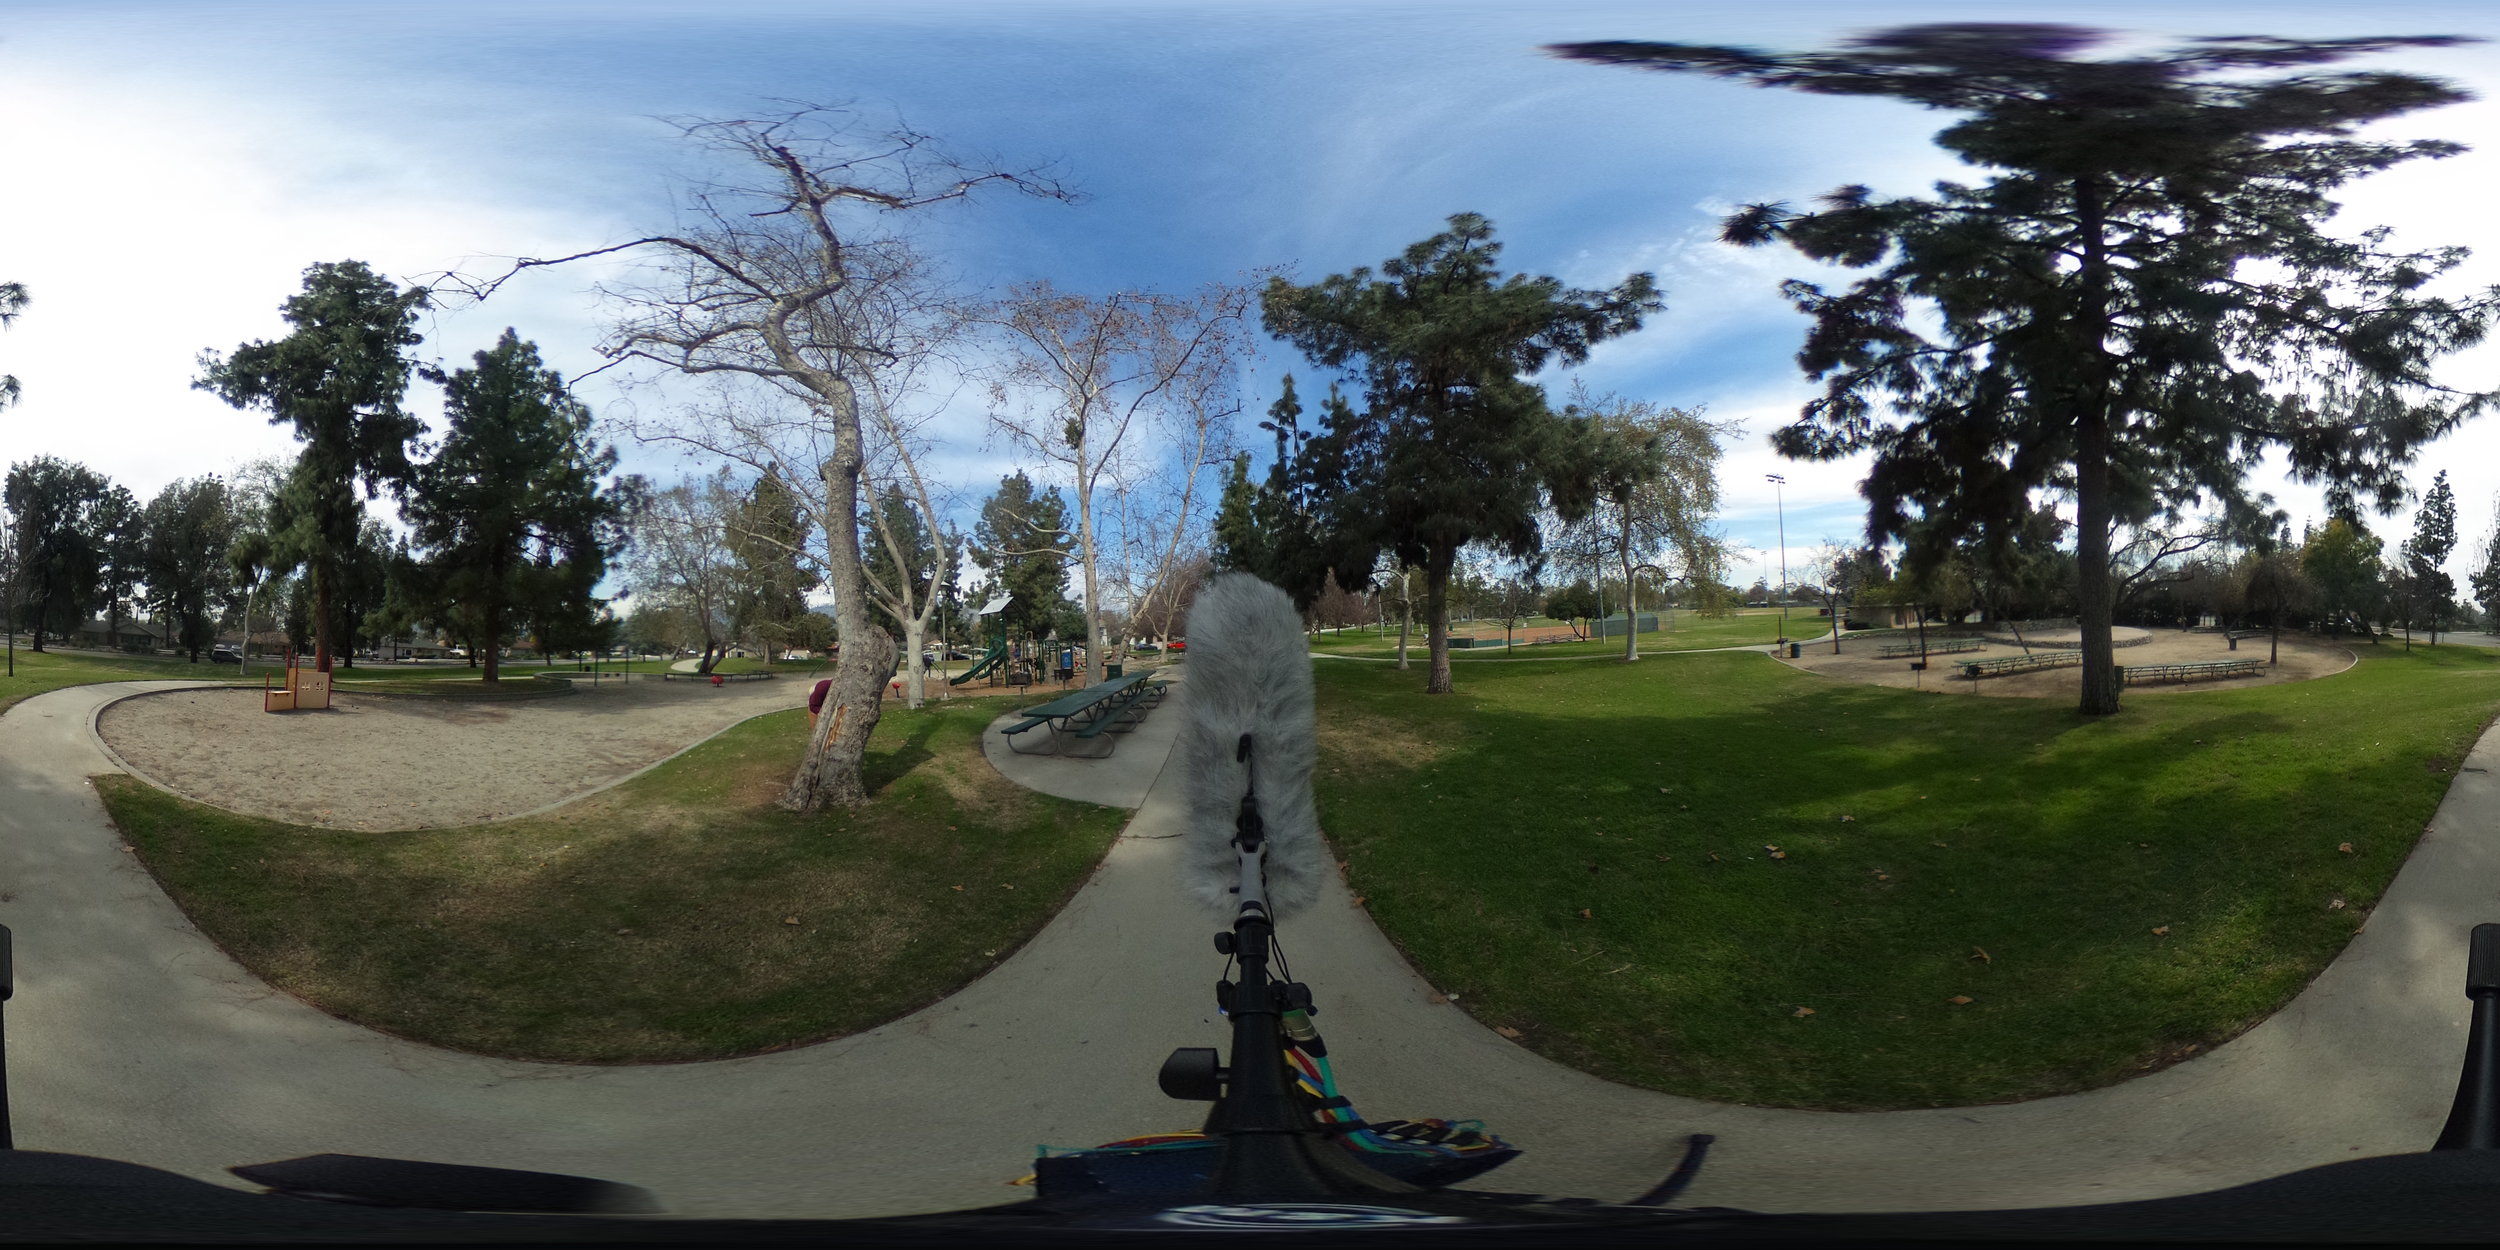 EXT_Day_Park_LightChildrenPlaying_BirdChirps_Bicycle_Group_Walla_360PictureReference.JPG